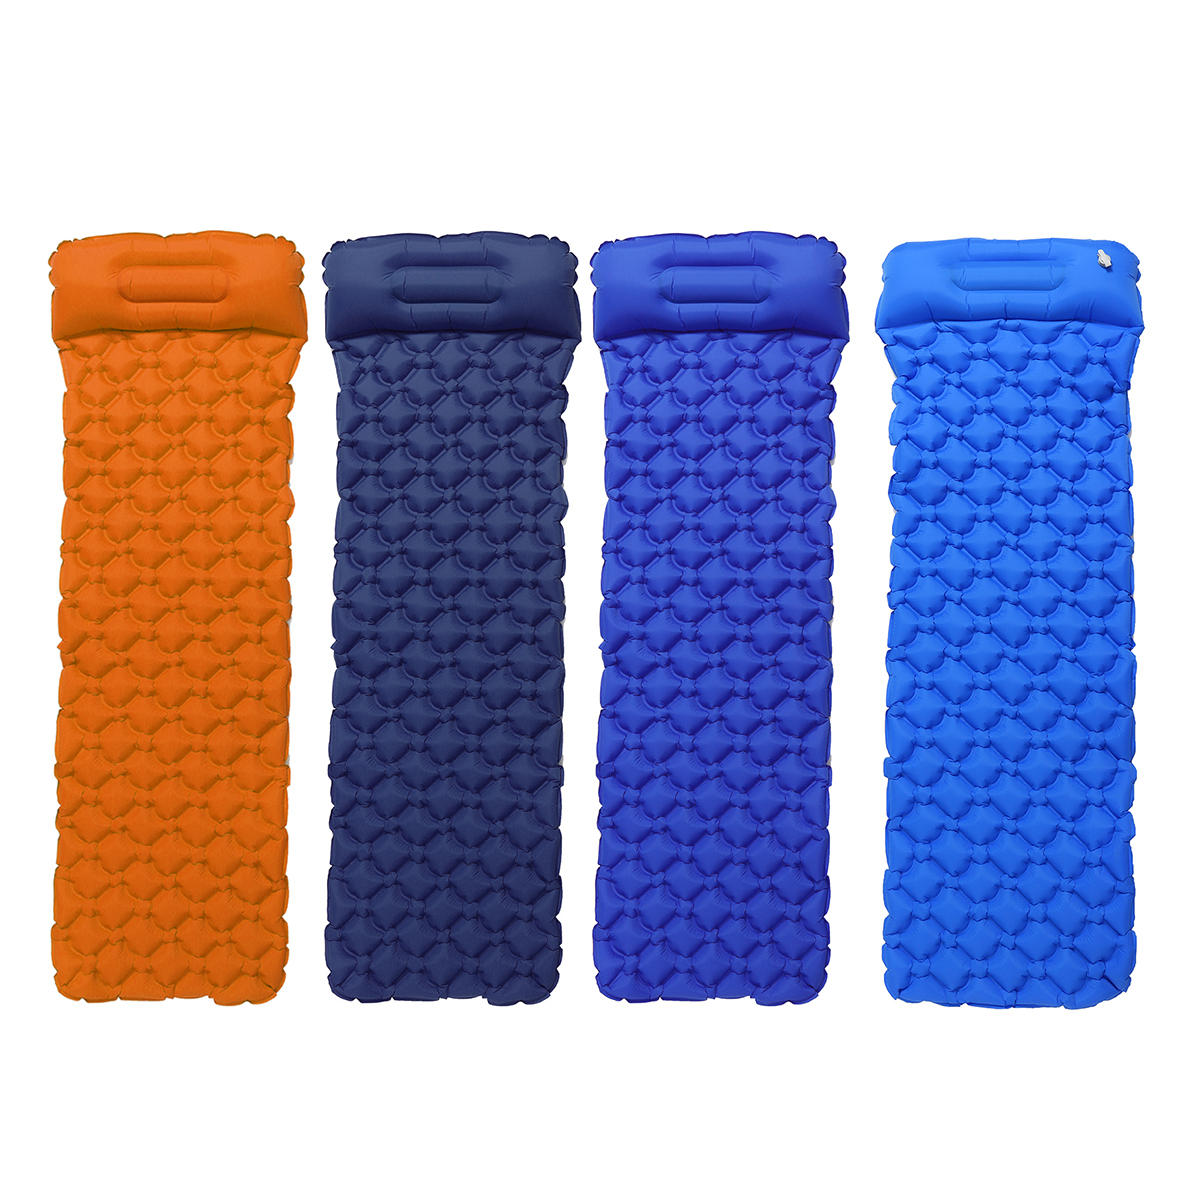 Ultralight Inflatable Sleeping Mat Multi-use Waterproof Camping Air Pad Foldable Roll Bed Mattress With Pillow